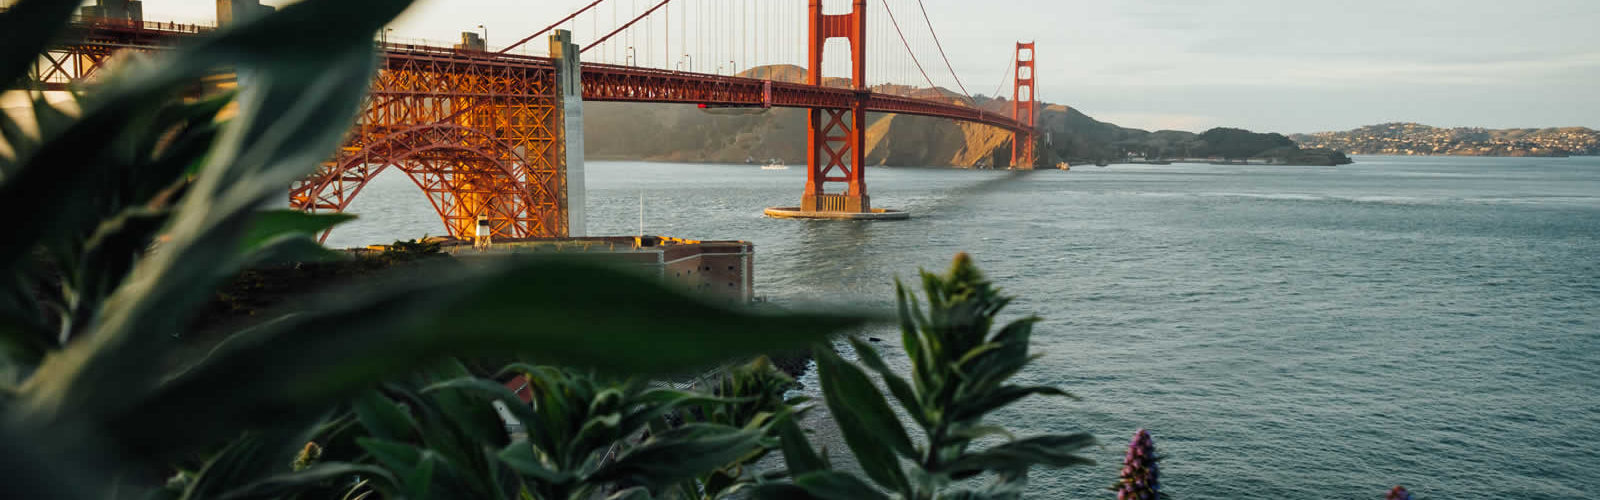 5-choses-secrets-insolites-san-francisco-une